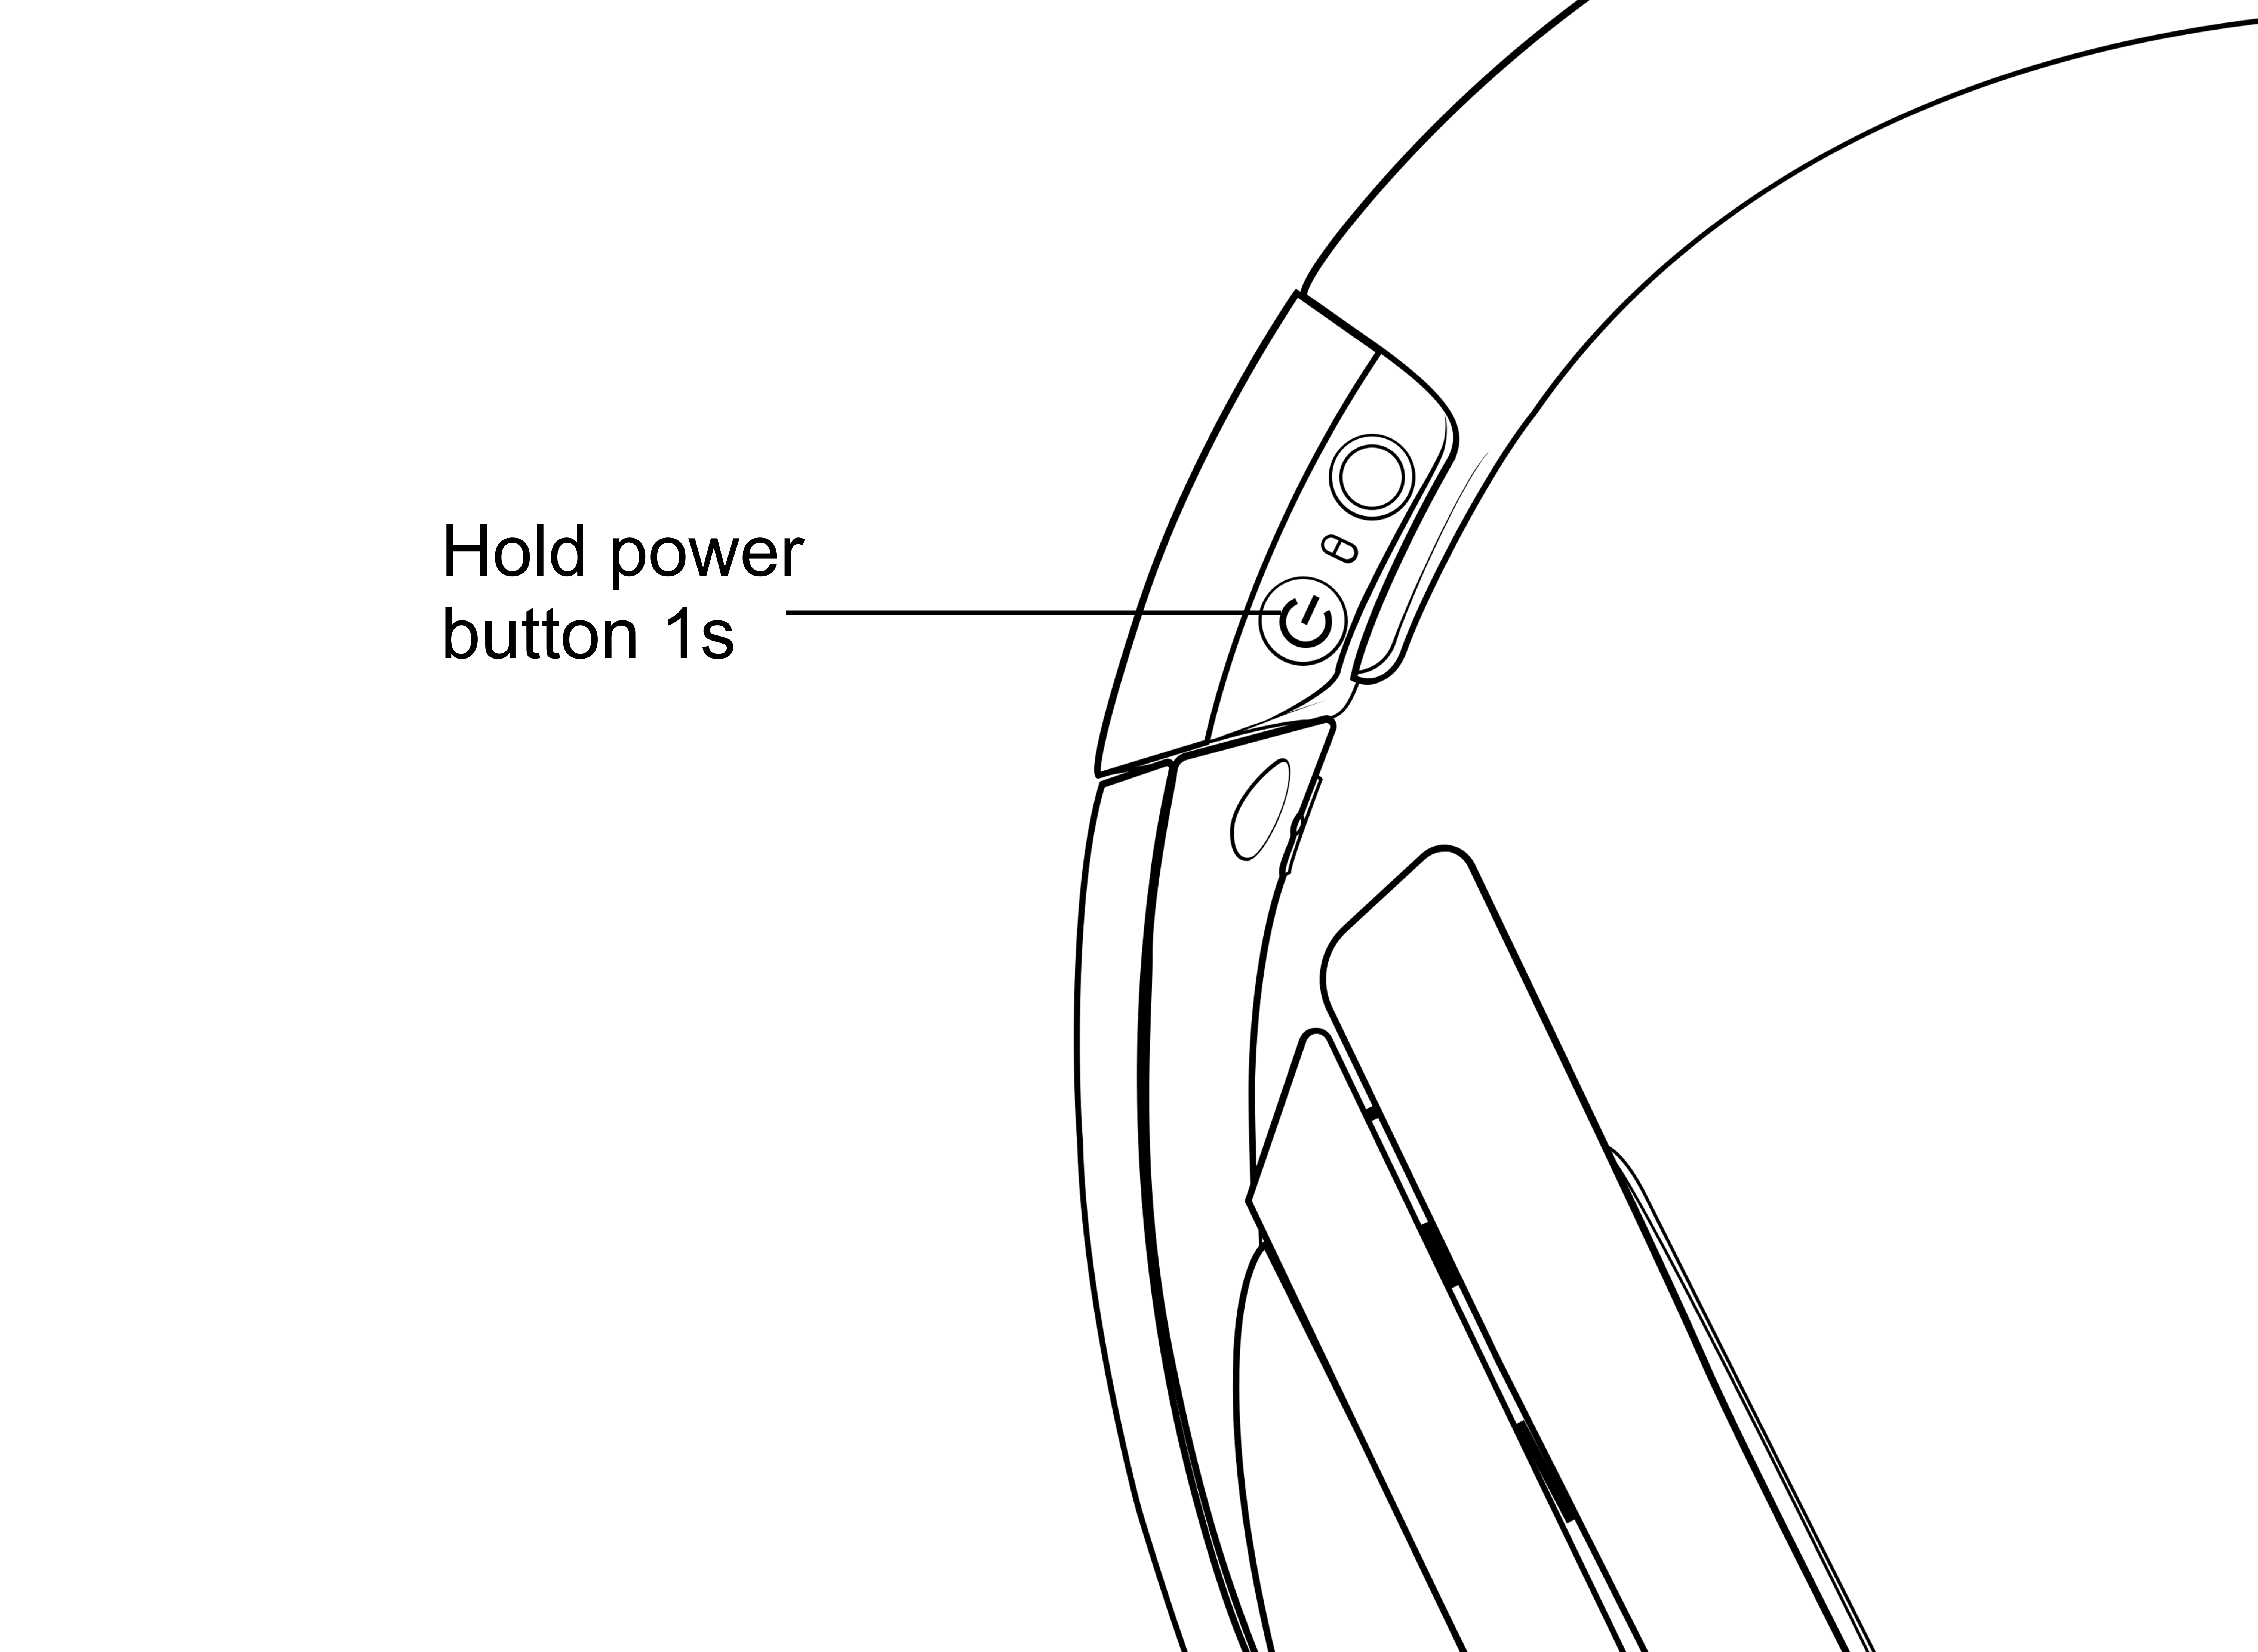 hold_power_button_1s.png